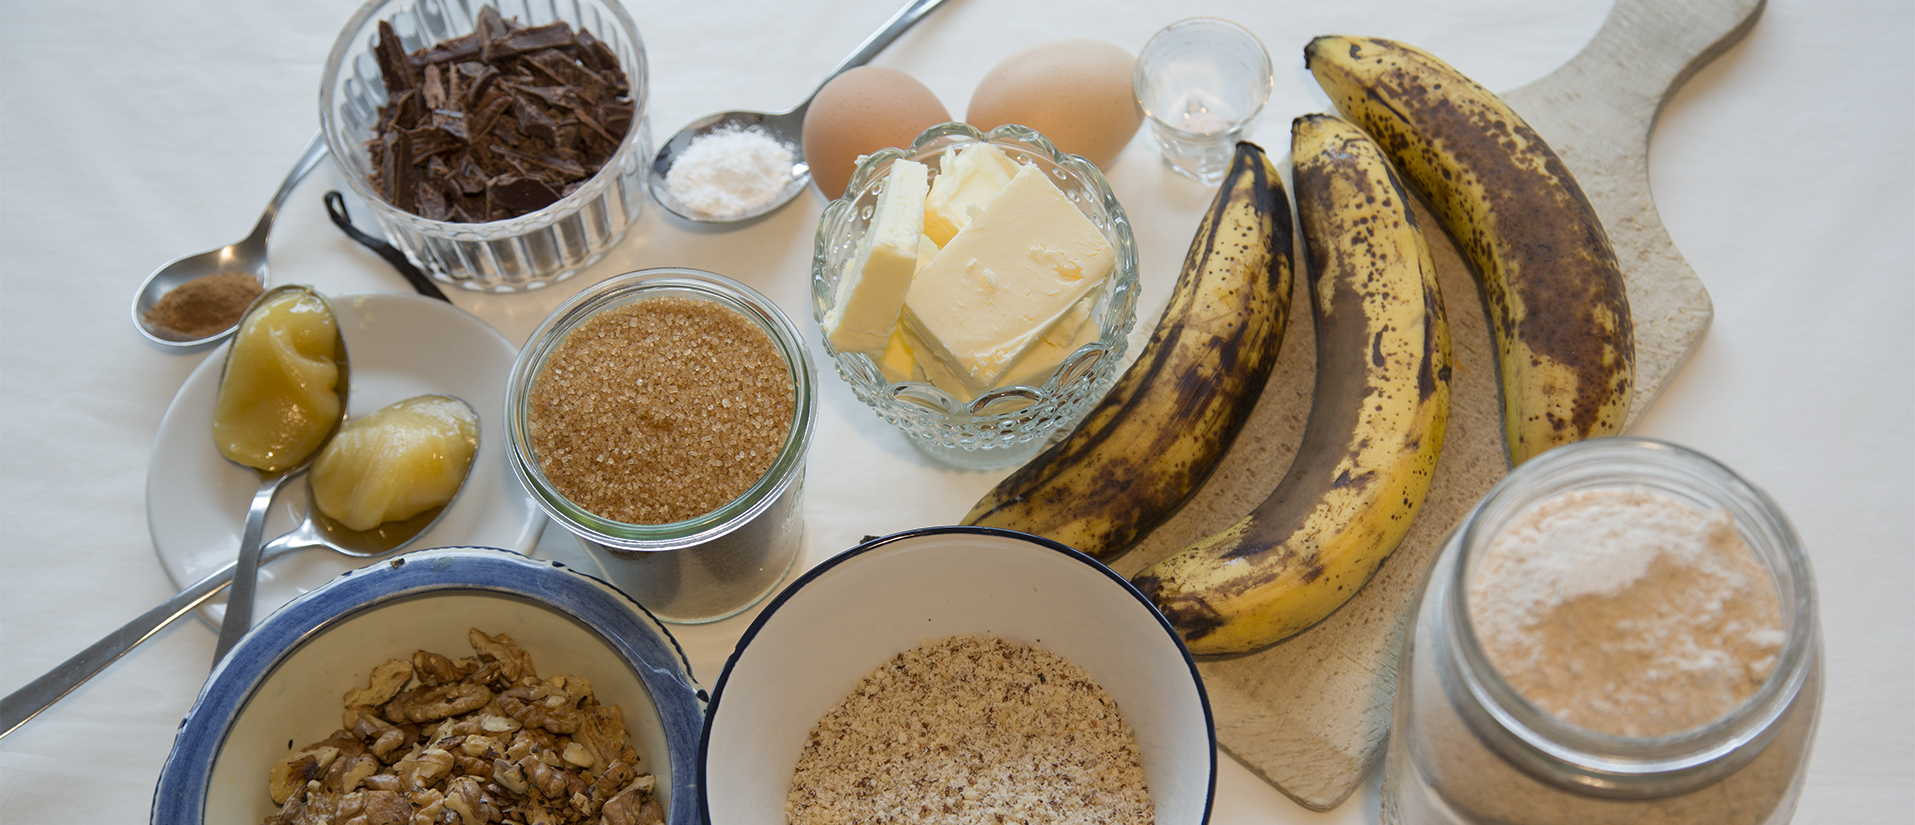 food waste and banana bread by green&hungry